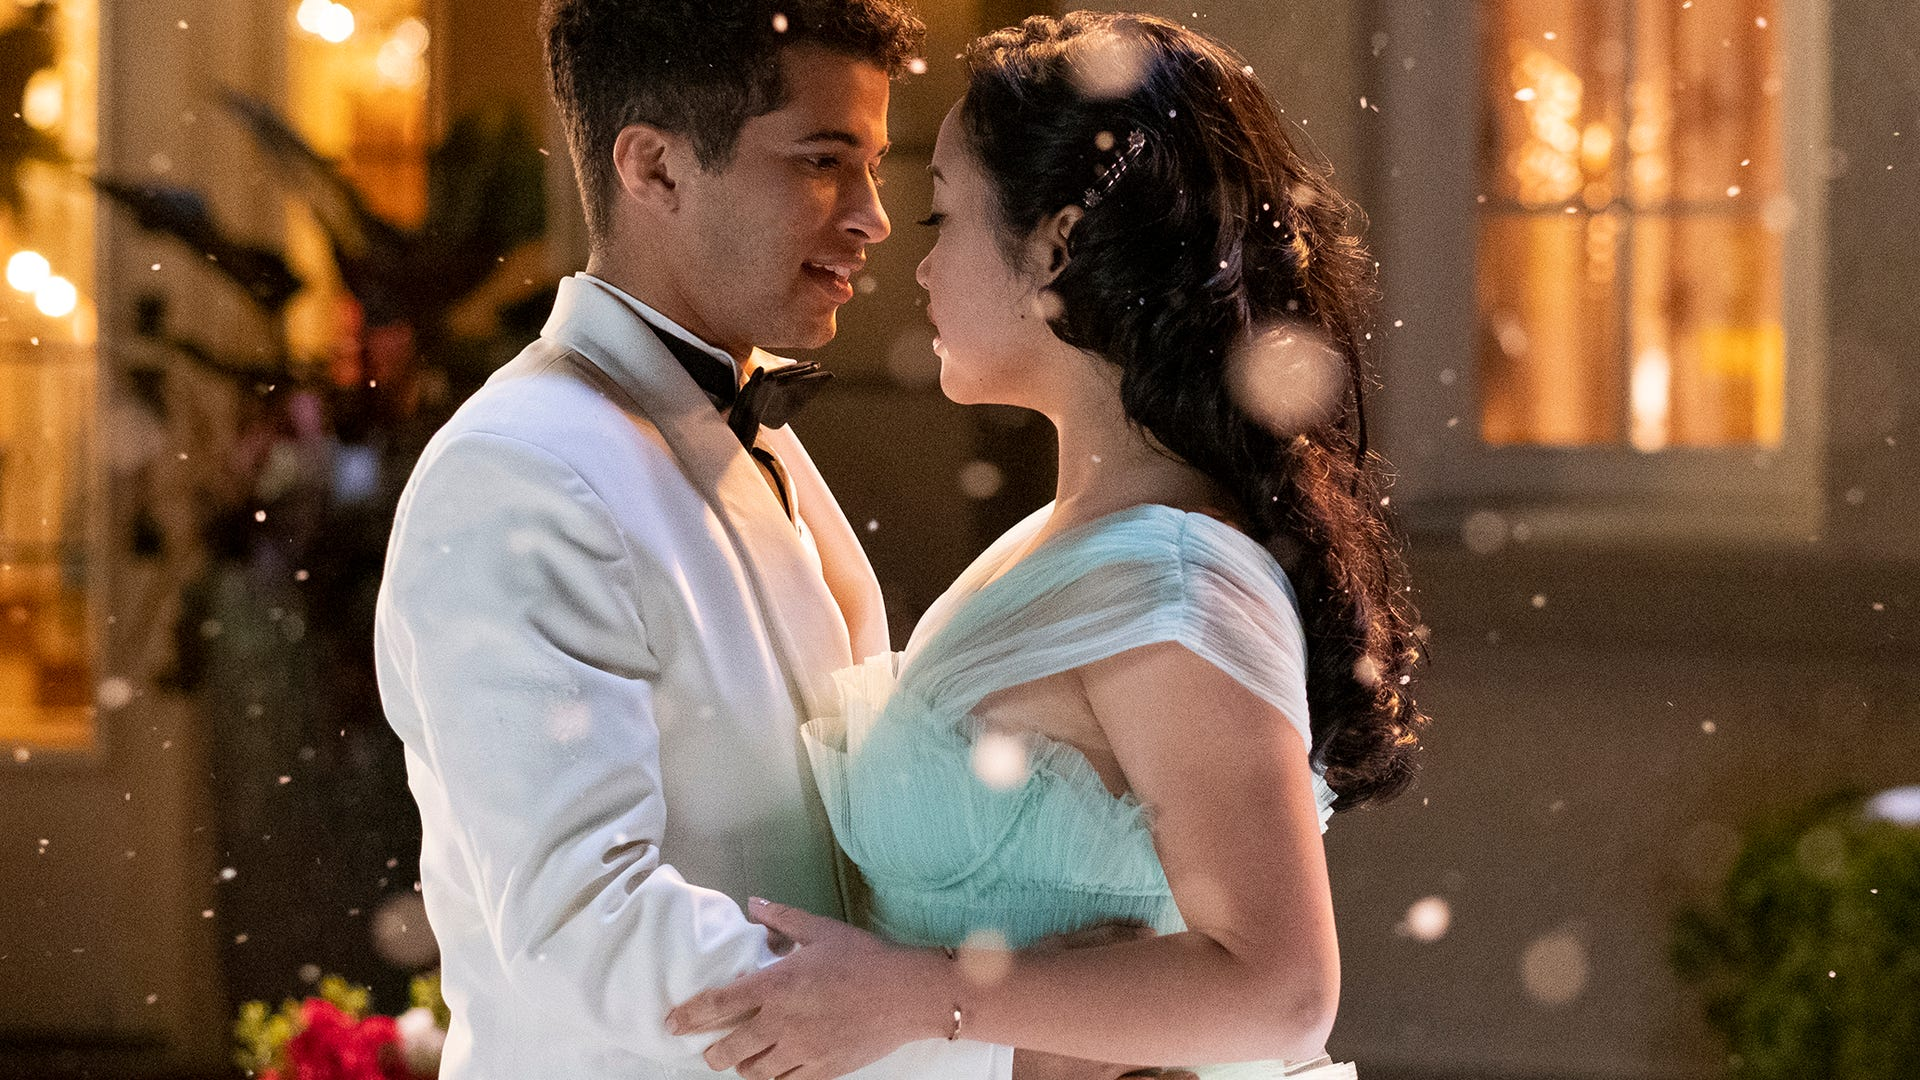 Jordan Fisher and Lana Condor, To All the Boys: P.S. I Still Love You